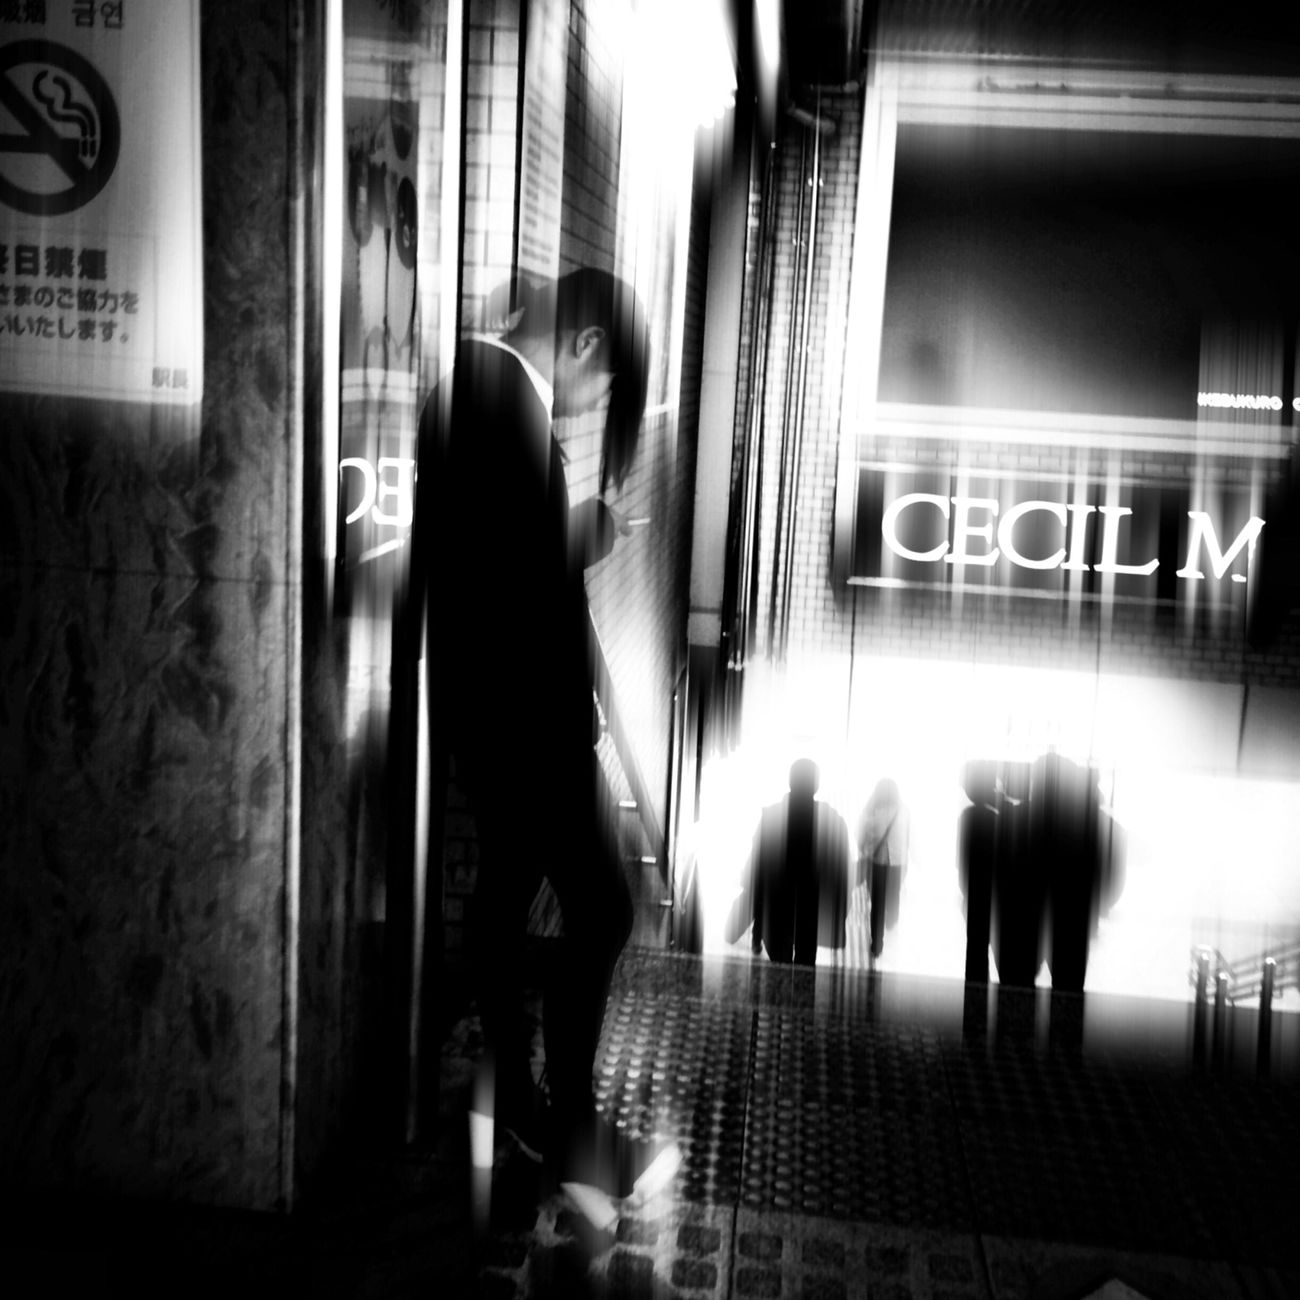 Streetphoto_bw Streetphotography Blackandwhite The Illuminator - 2014 EyeEm Awards